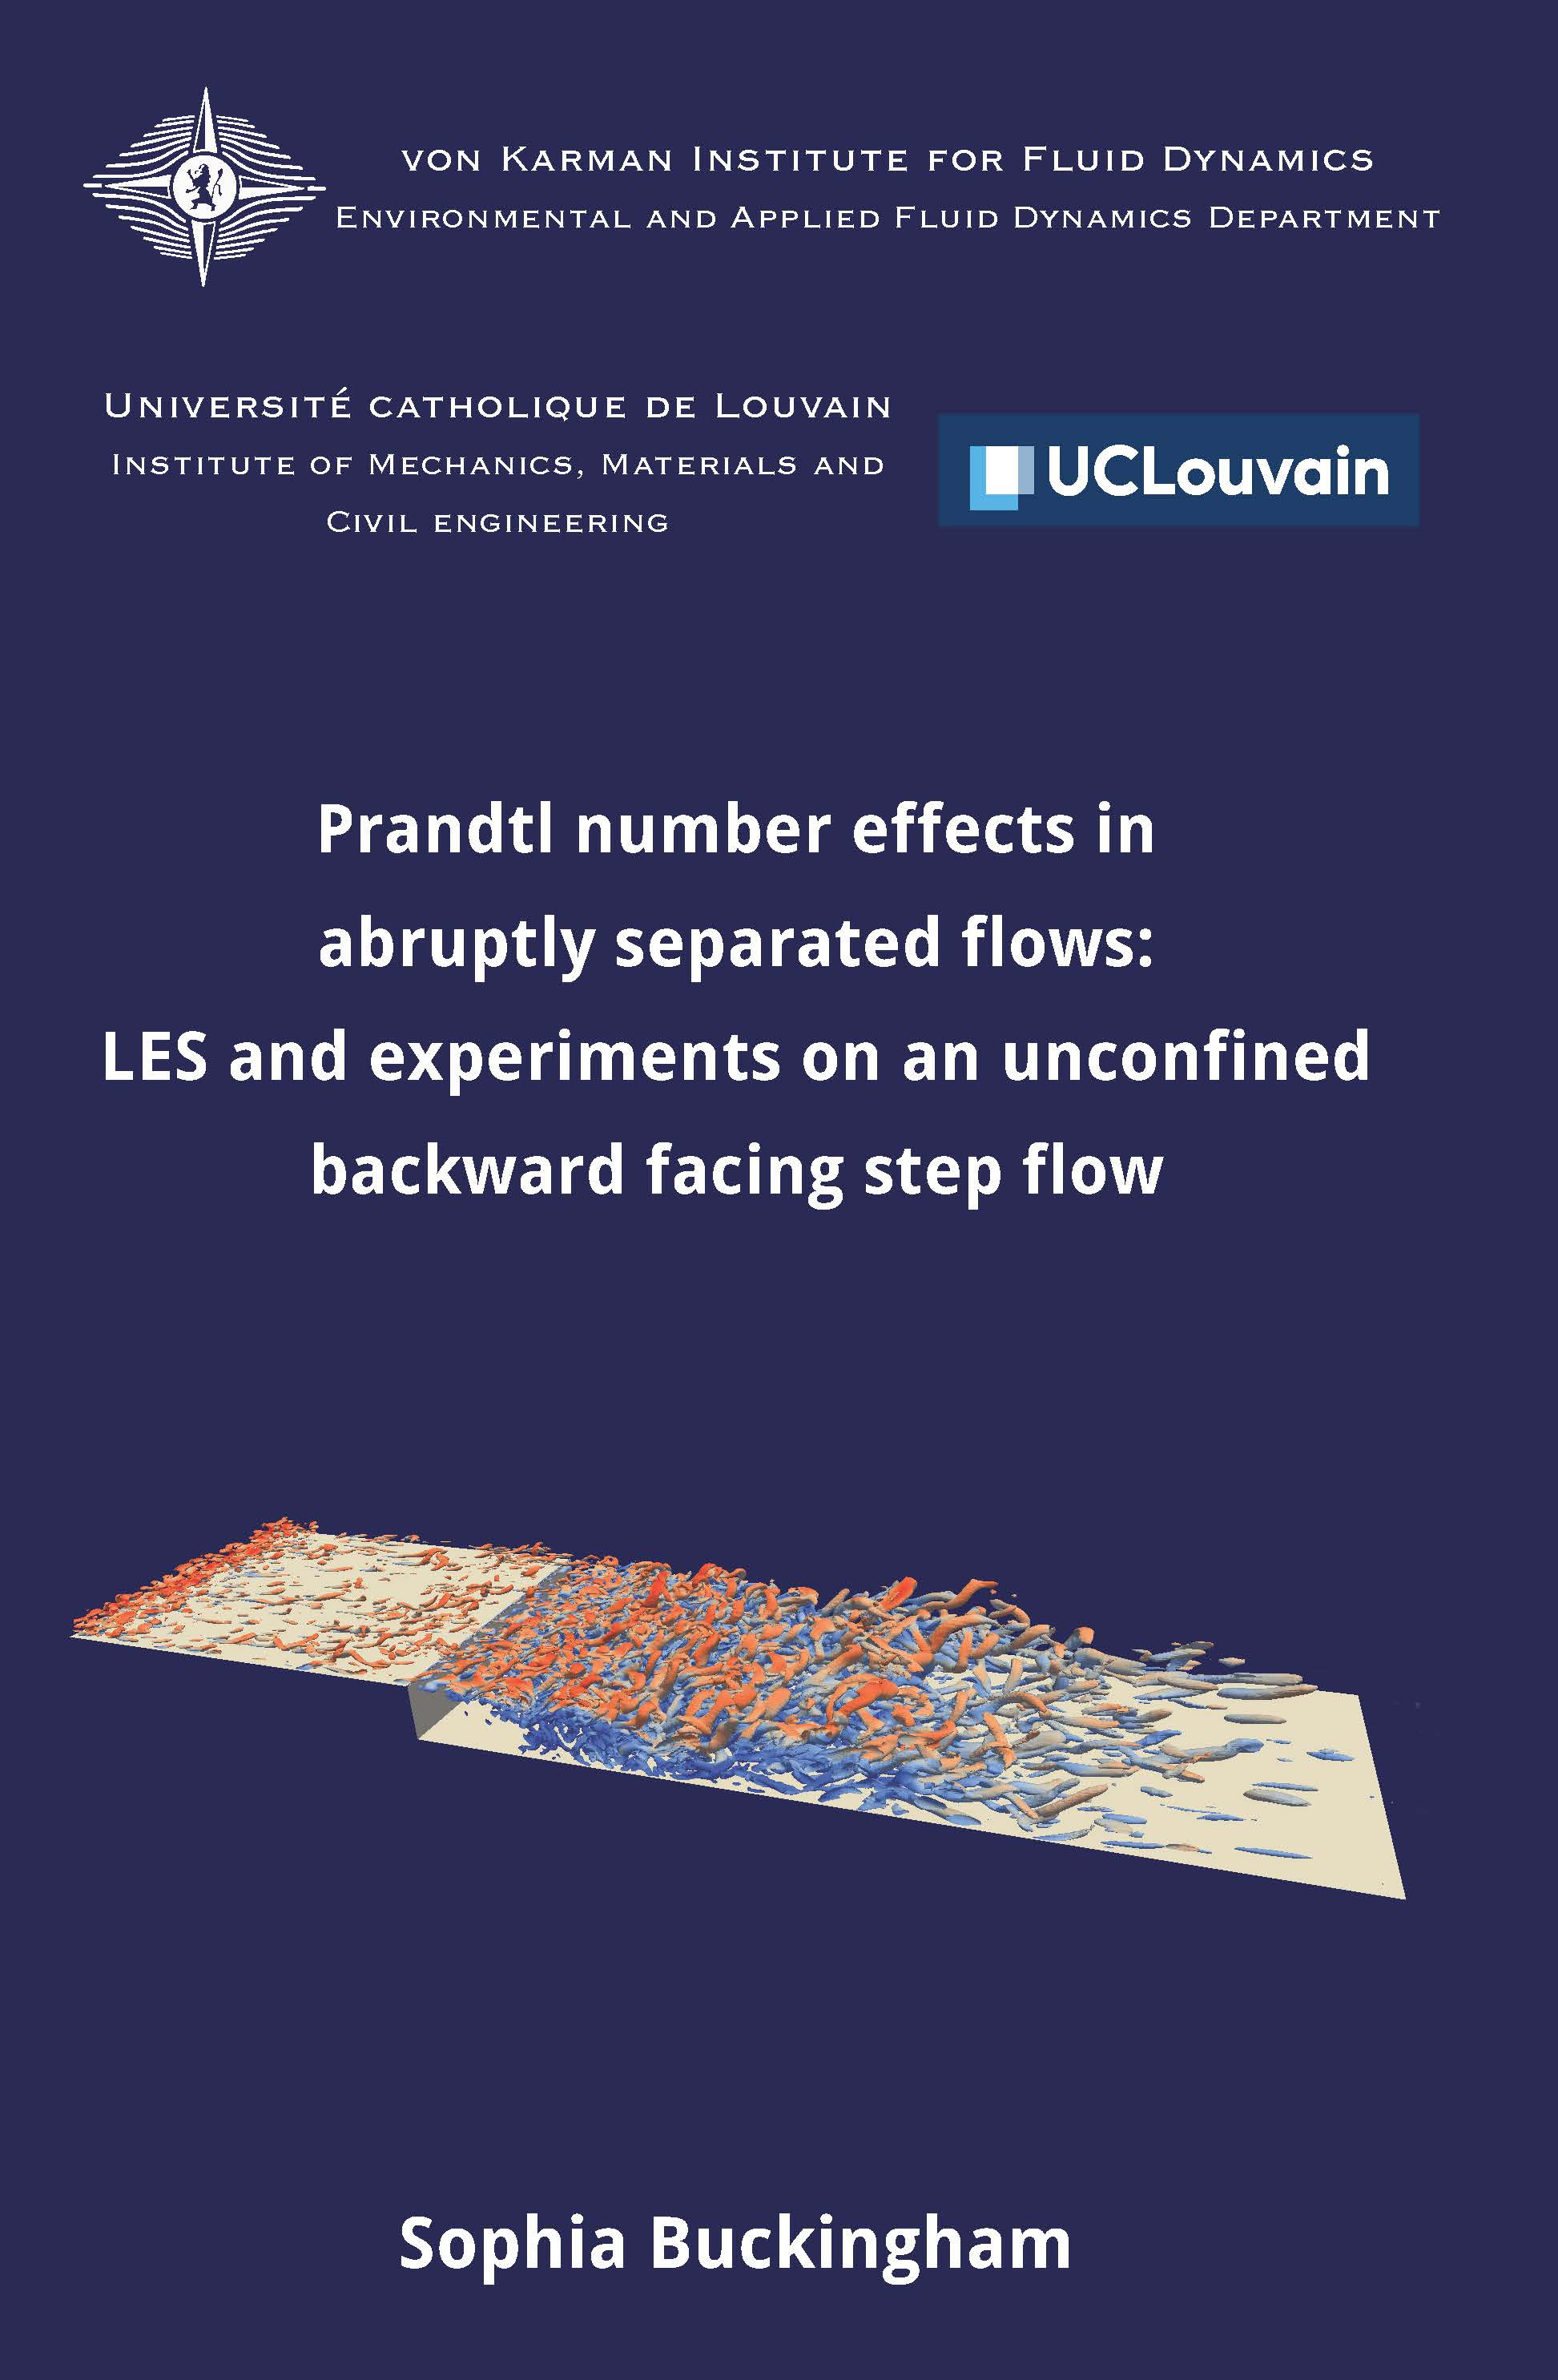 Prandtl number effects in abruptly separated flows: LES and experiments on an unconfined backward facing step flow - Sophia Buckingham - Ph.D. Thesis - Free download